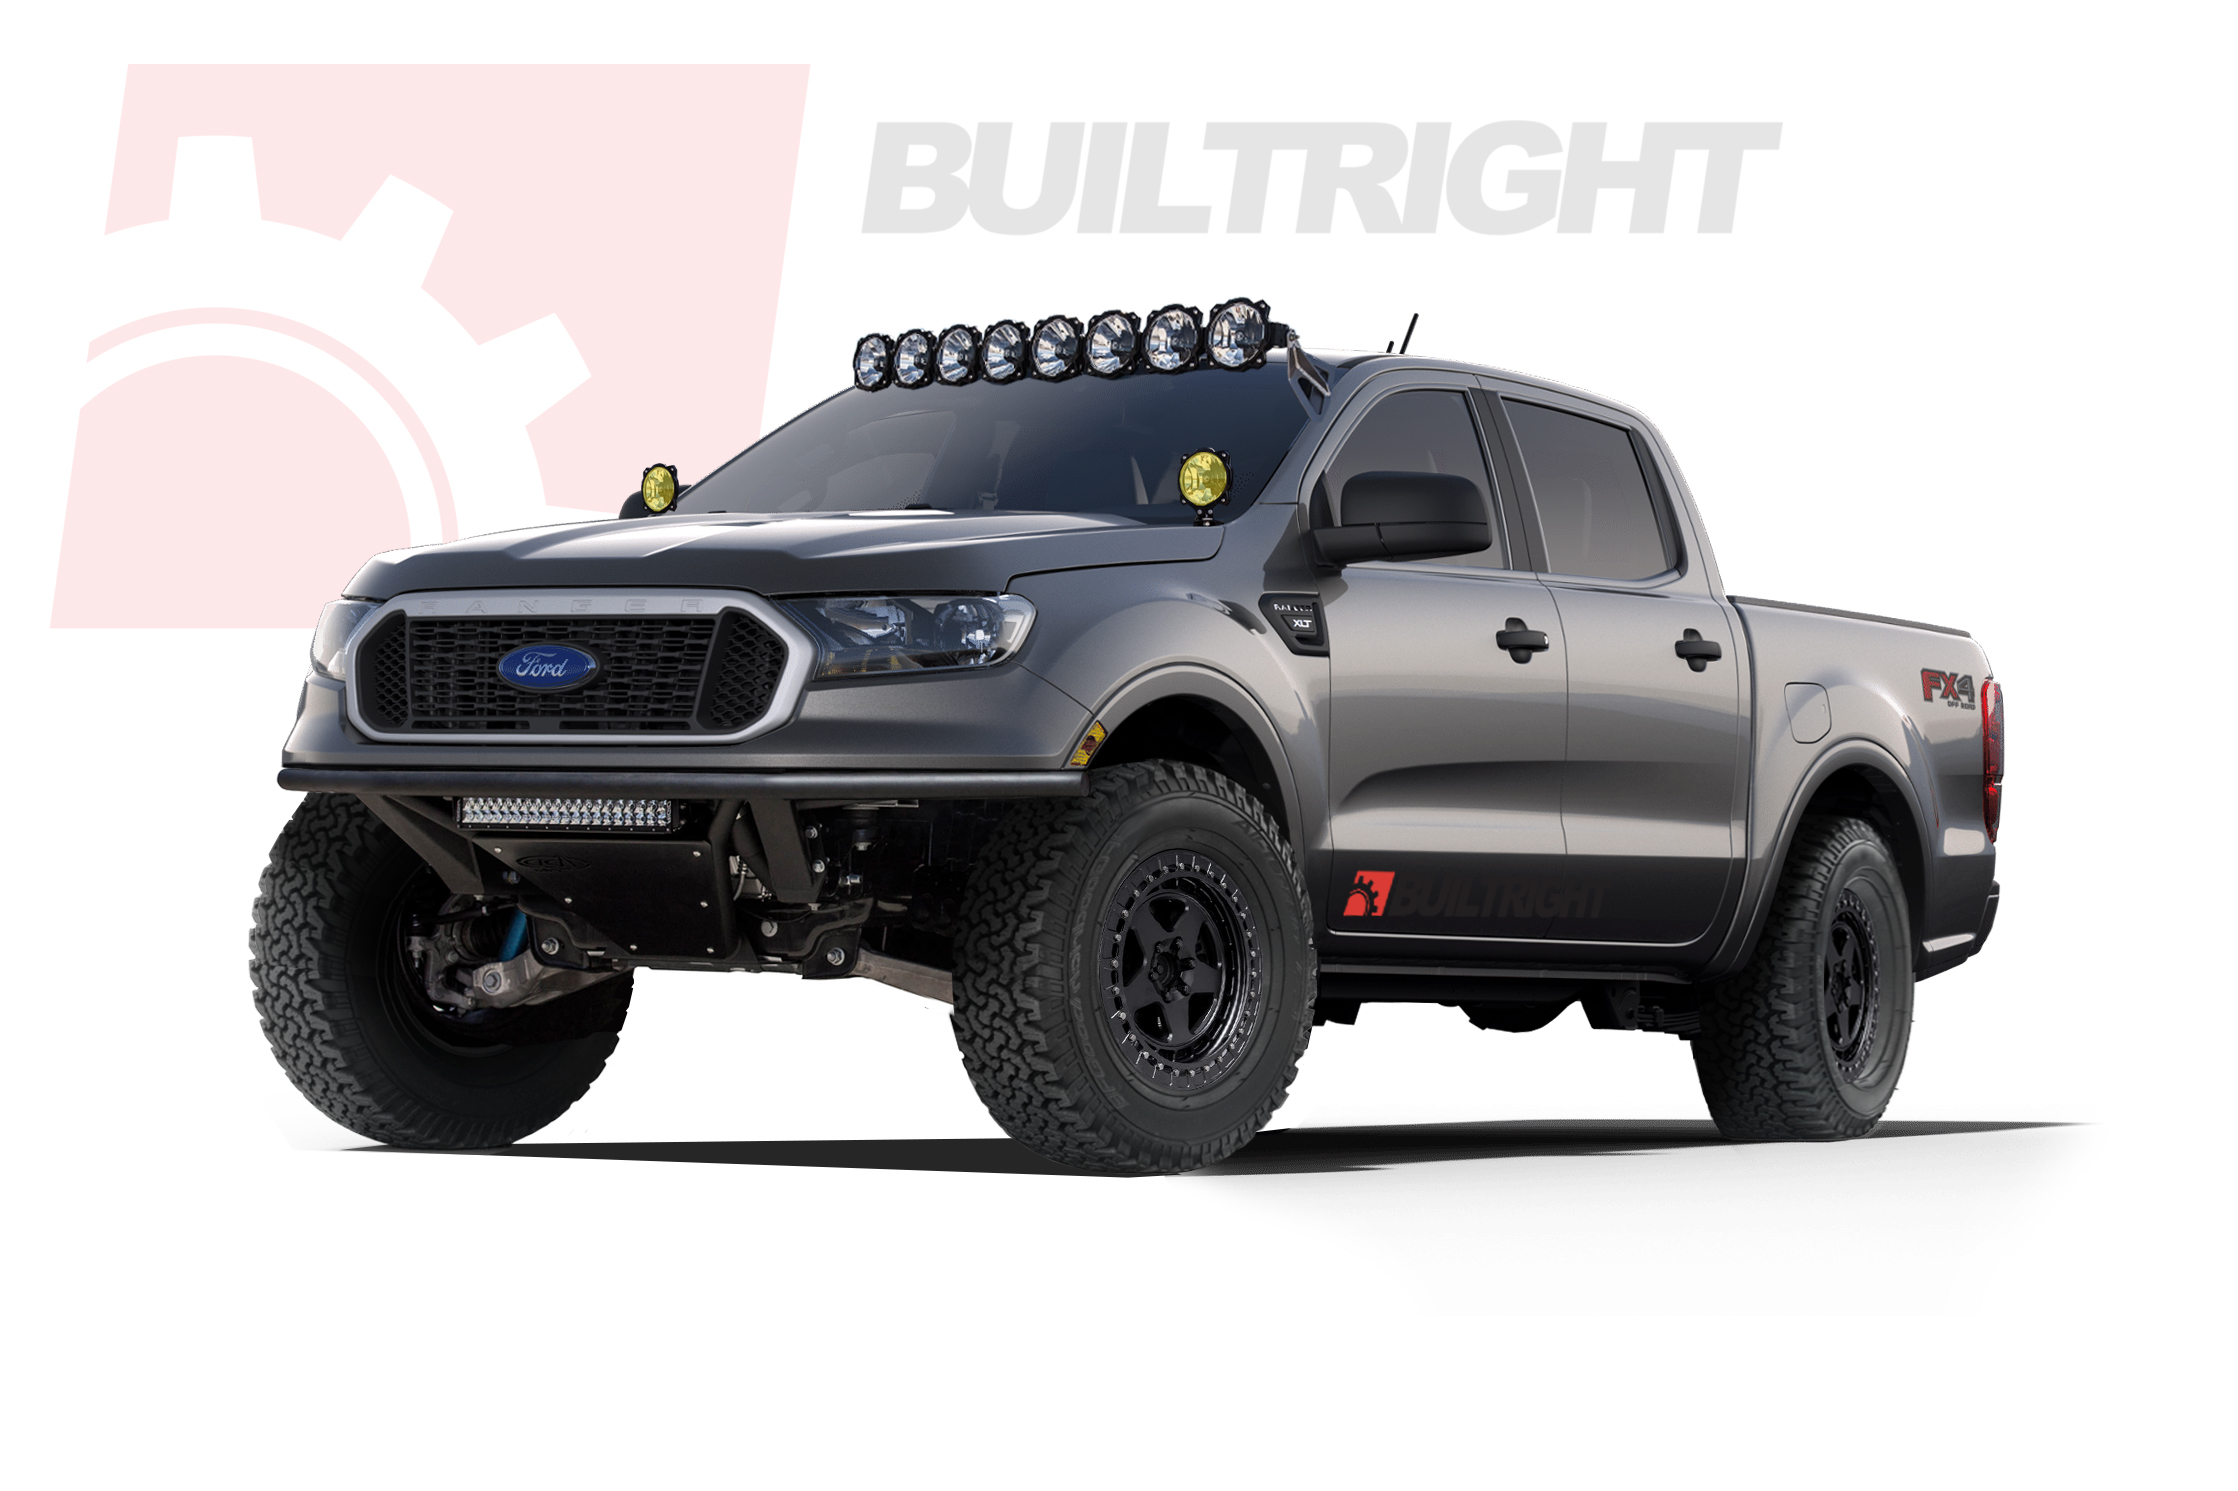 BuiltRight Industries 2019 Ford Ranger concept - The Trailhead Ranger